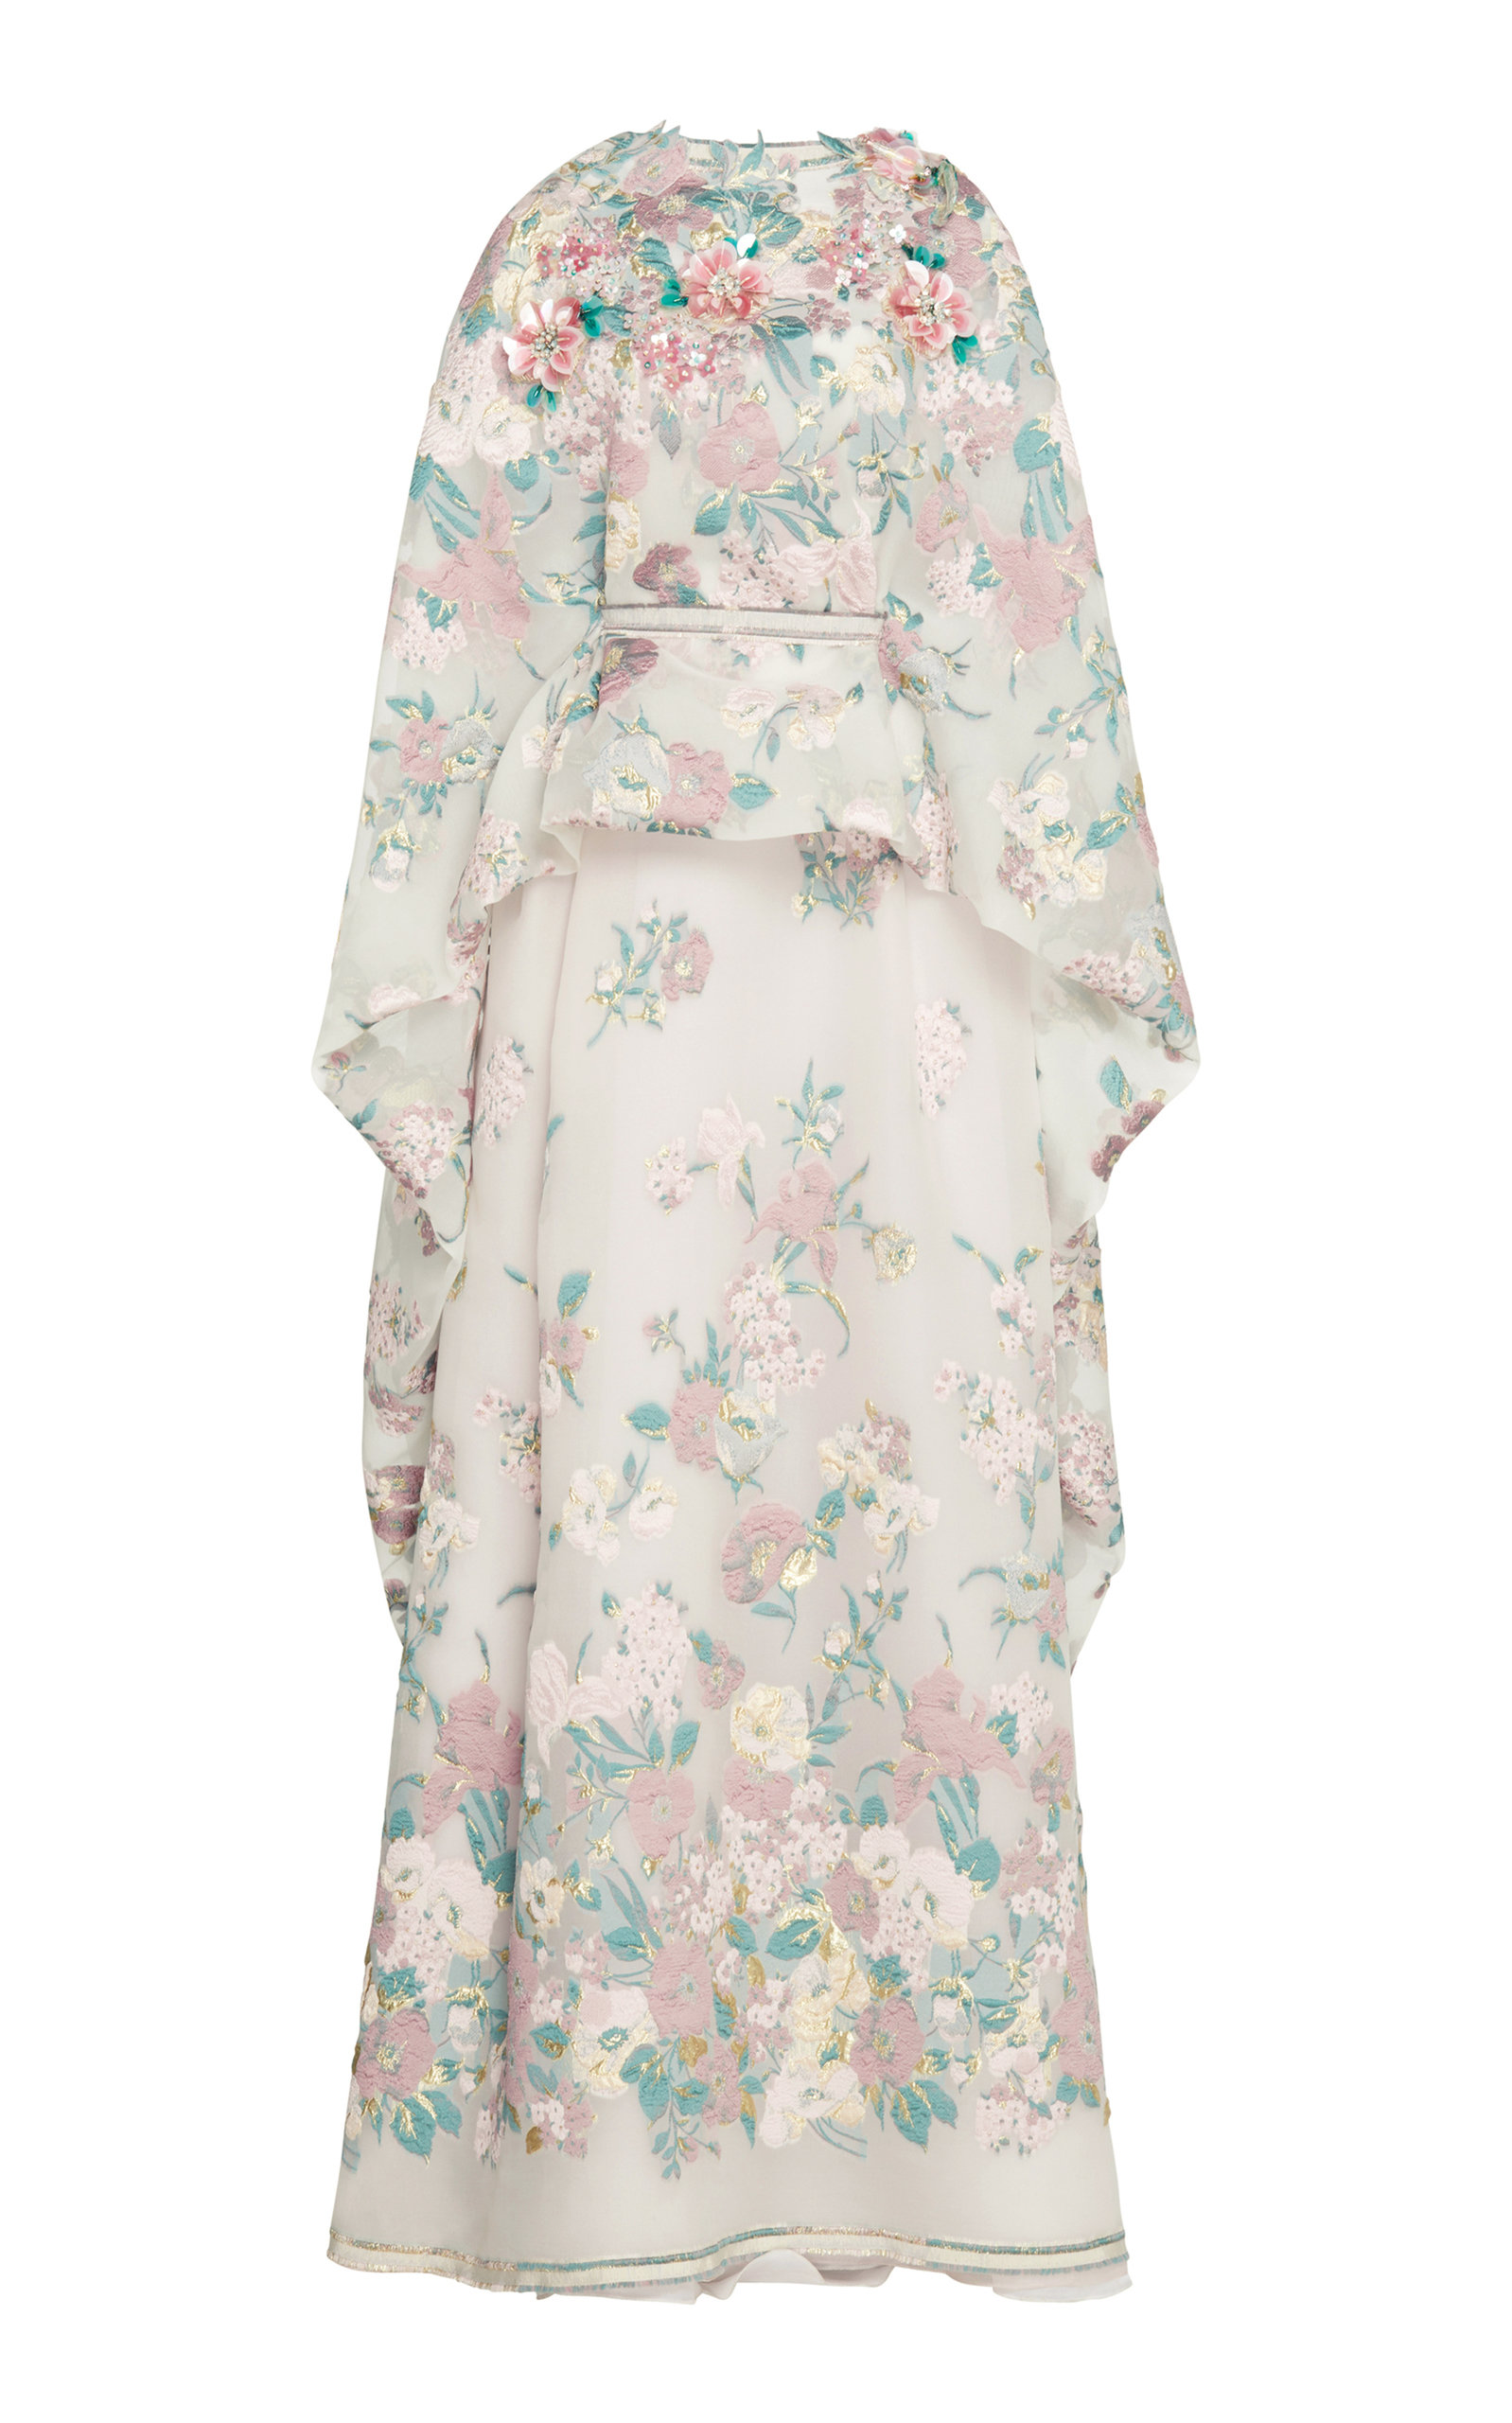 LUISA BECCARIA EMBELLISHED FLORAL CREPE GOWN